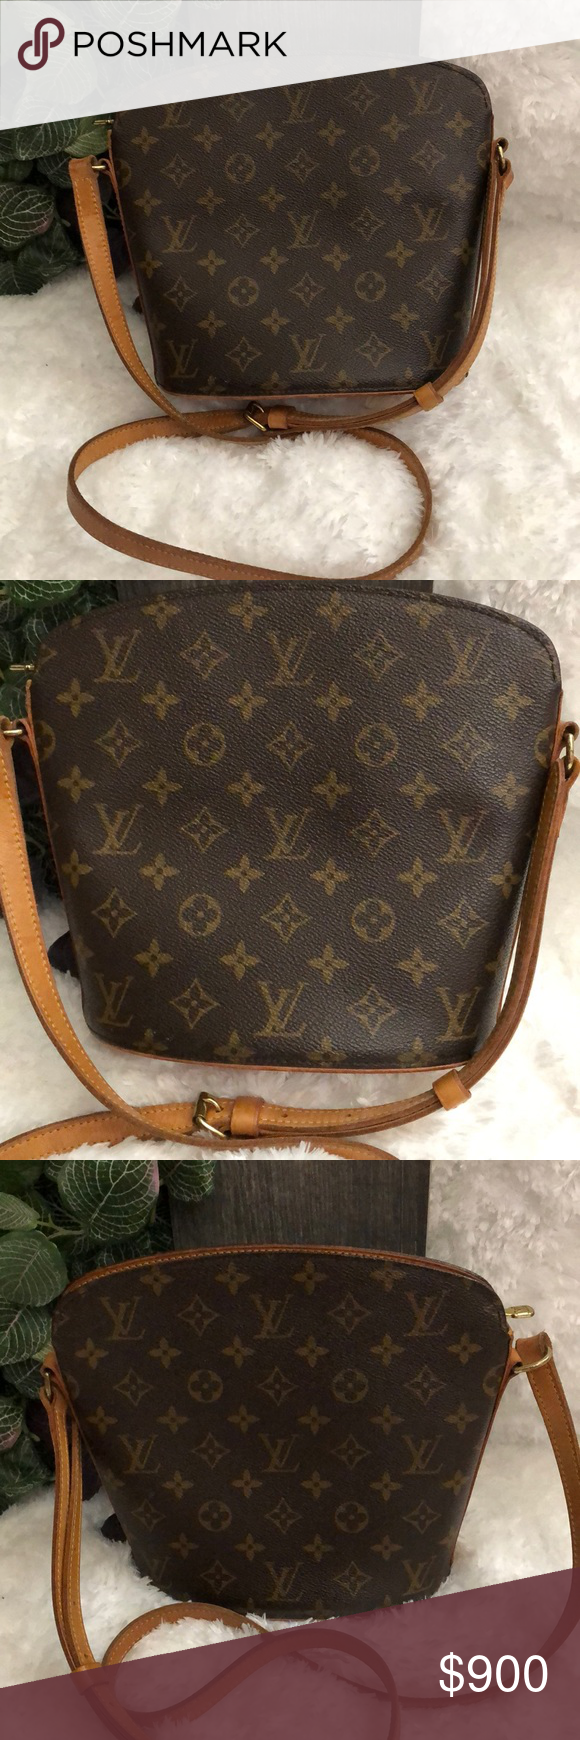 2603c8a41e11 100% Authentic Louis Vuitton Drouot Shoulder Bag 100% Authentic Vintage Louis  Vuitton (Retired